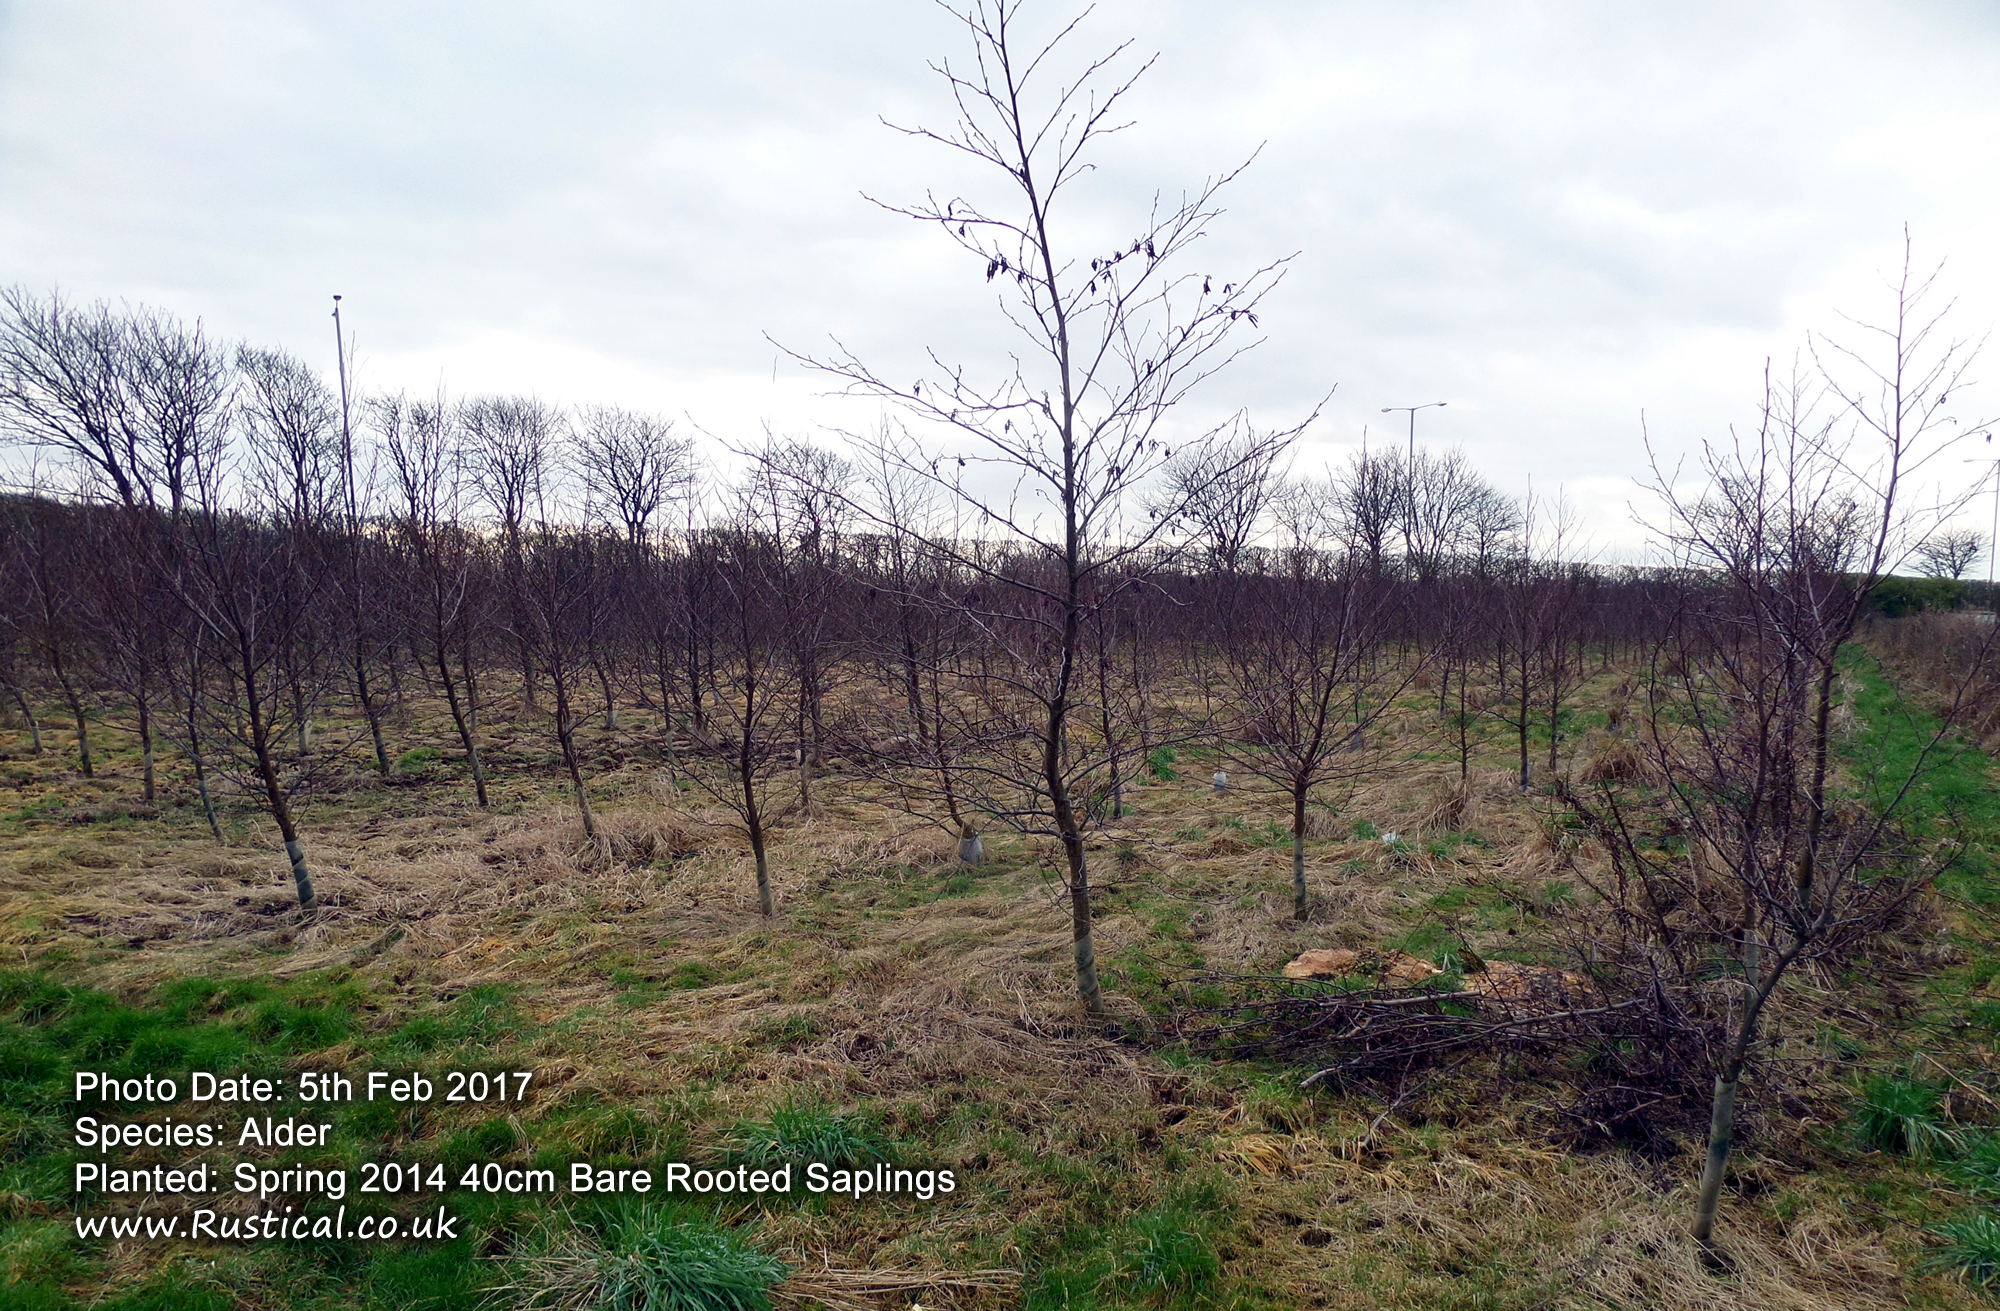 Alder - 3 years on from planting